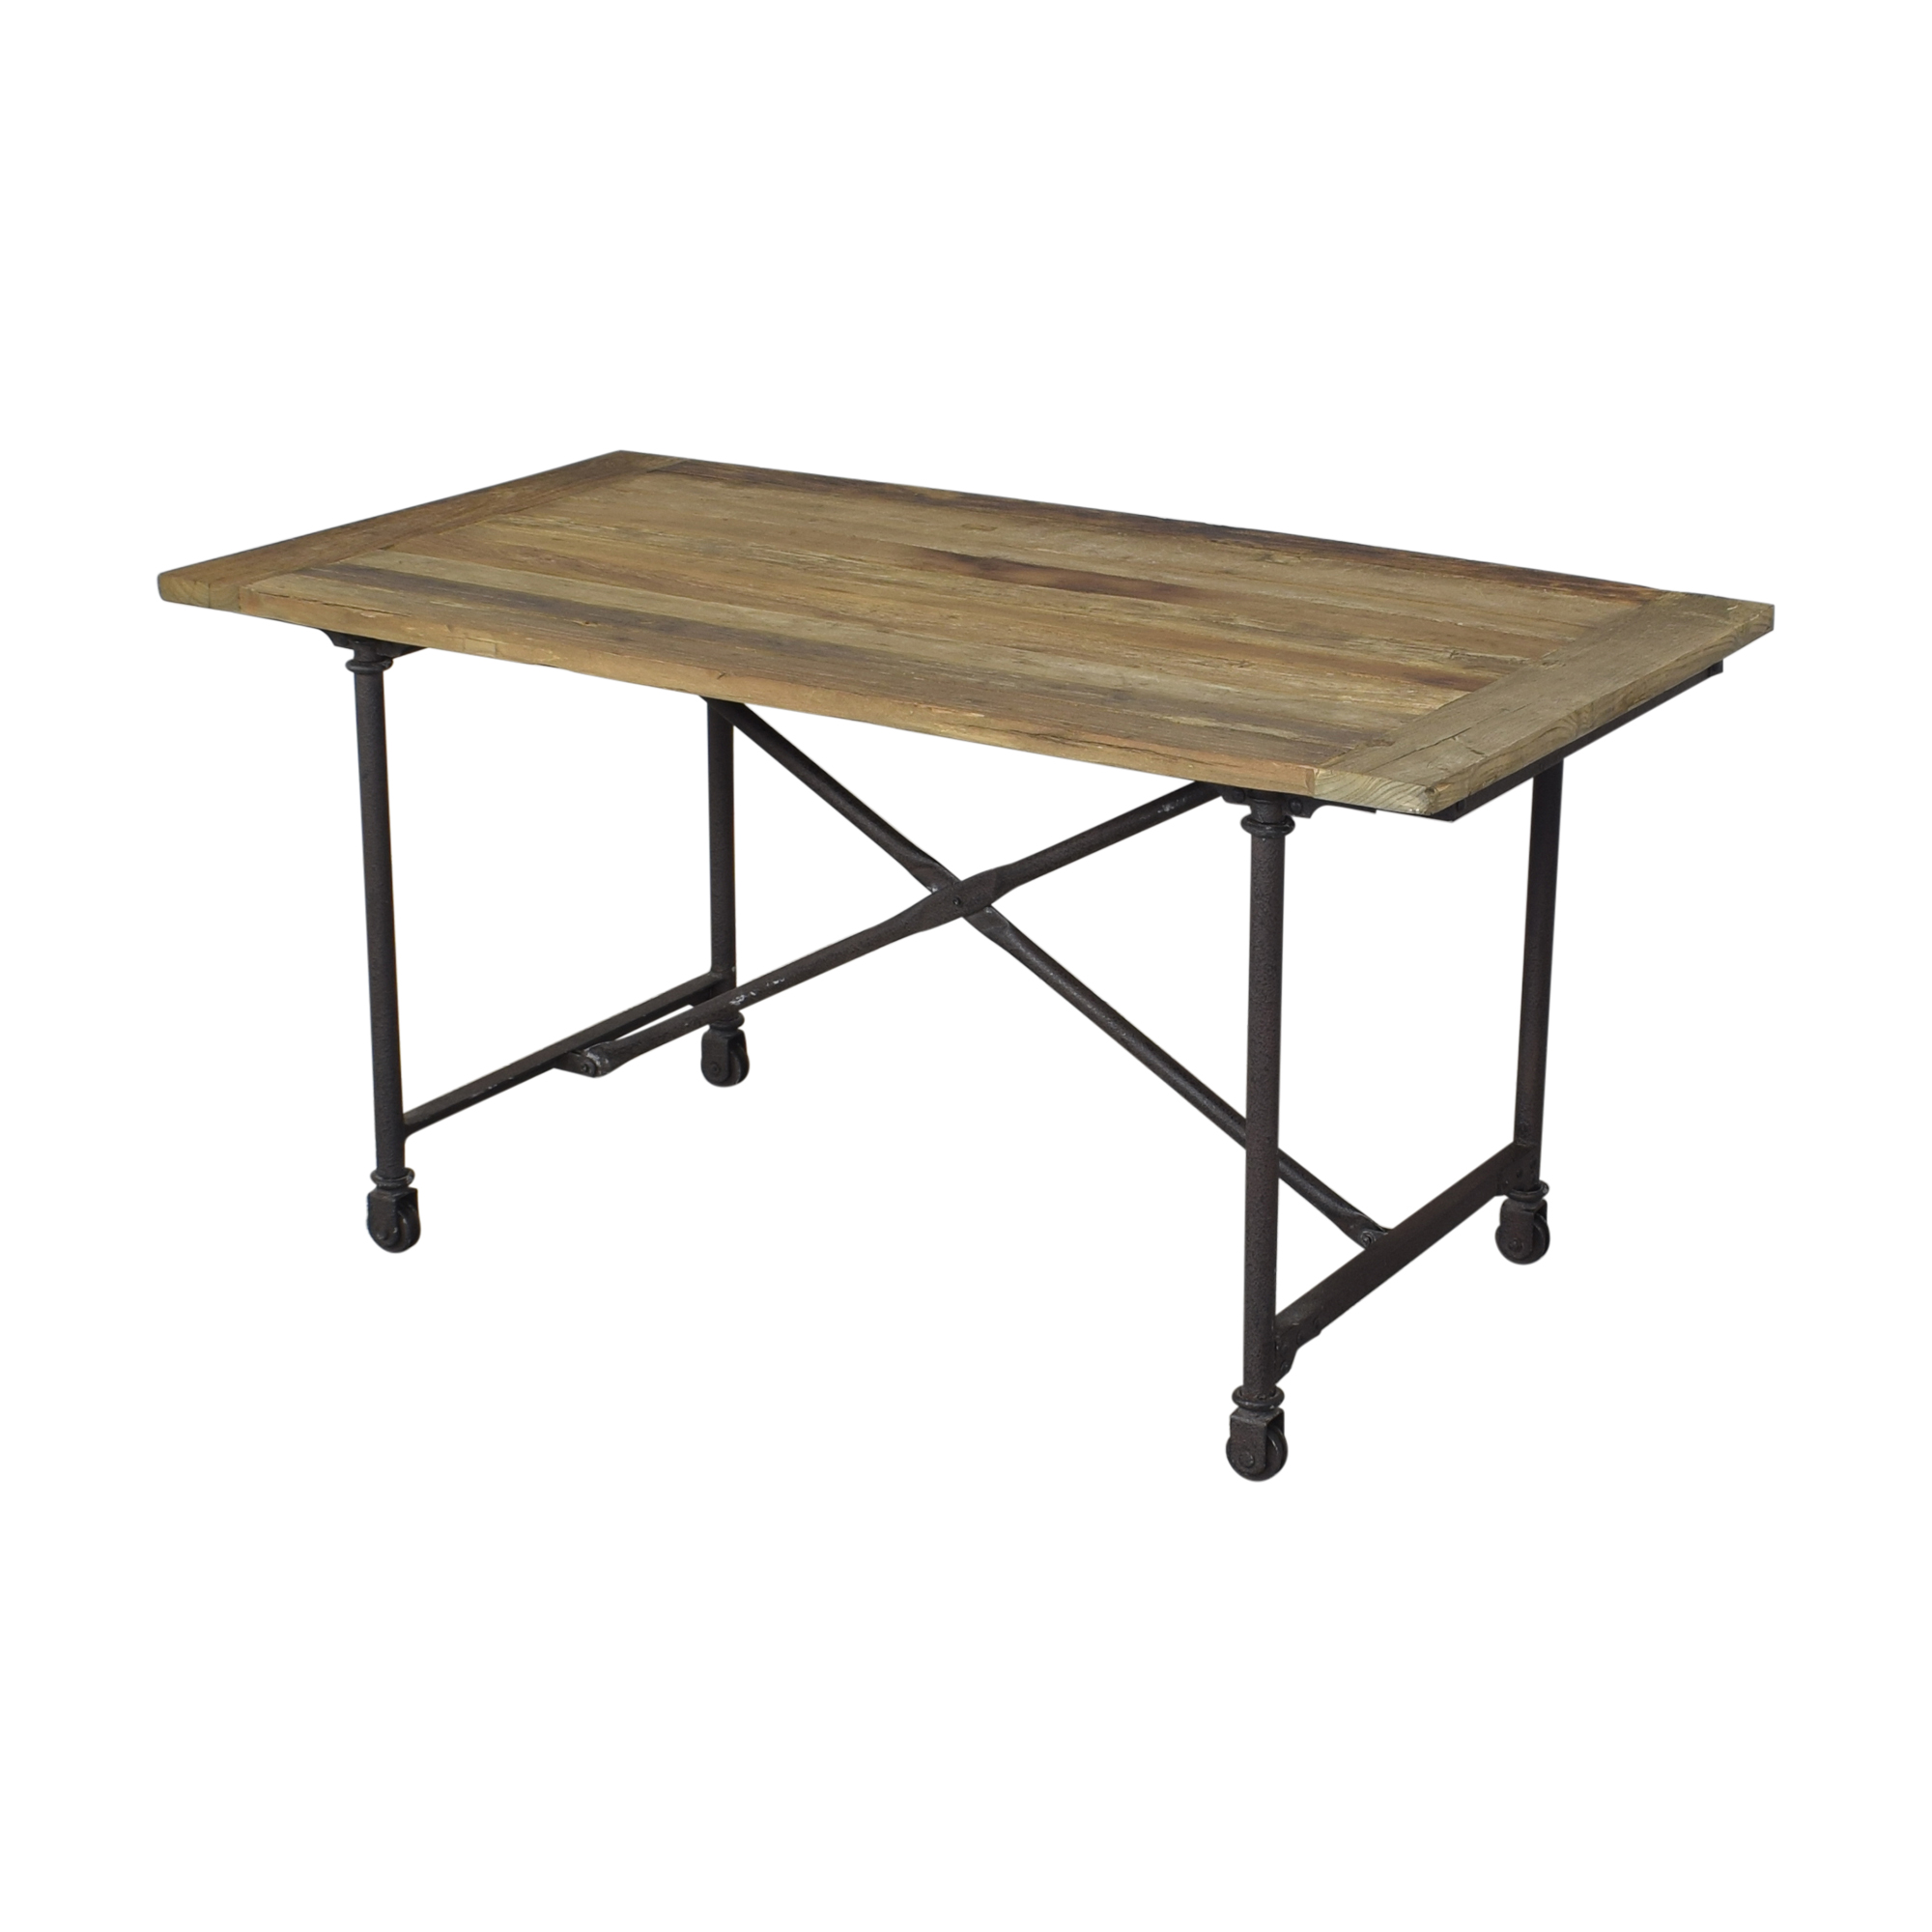 Restoration Hardware Restoration Hardware Flatiron Rectangular Dining Table on sale